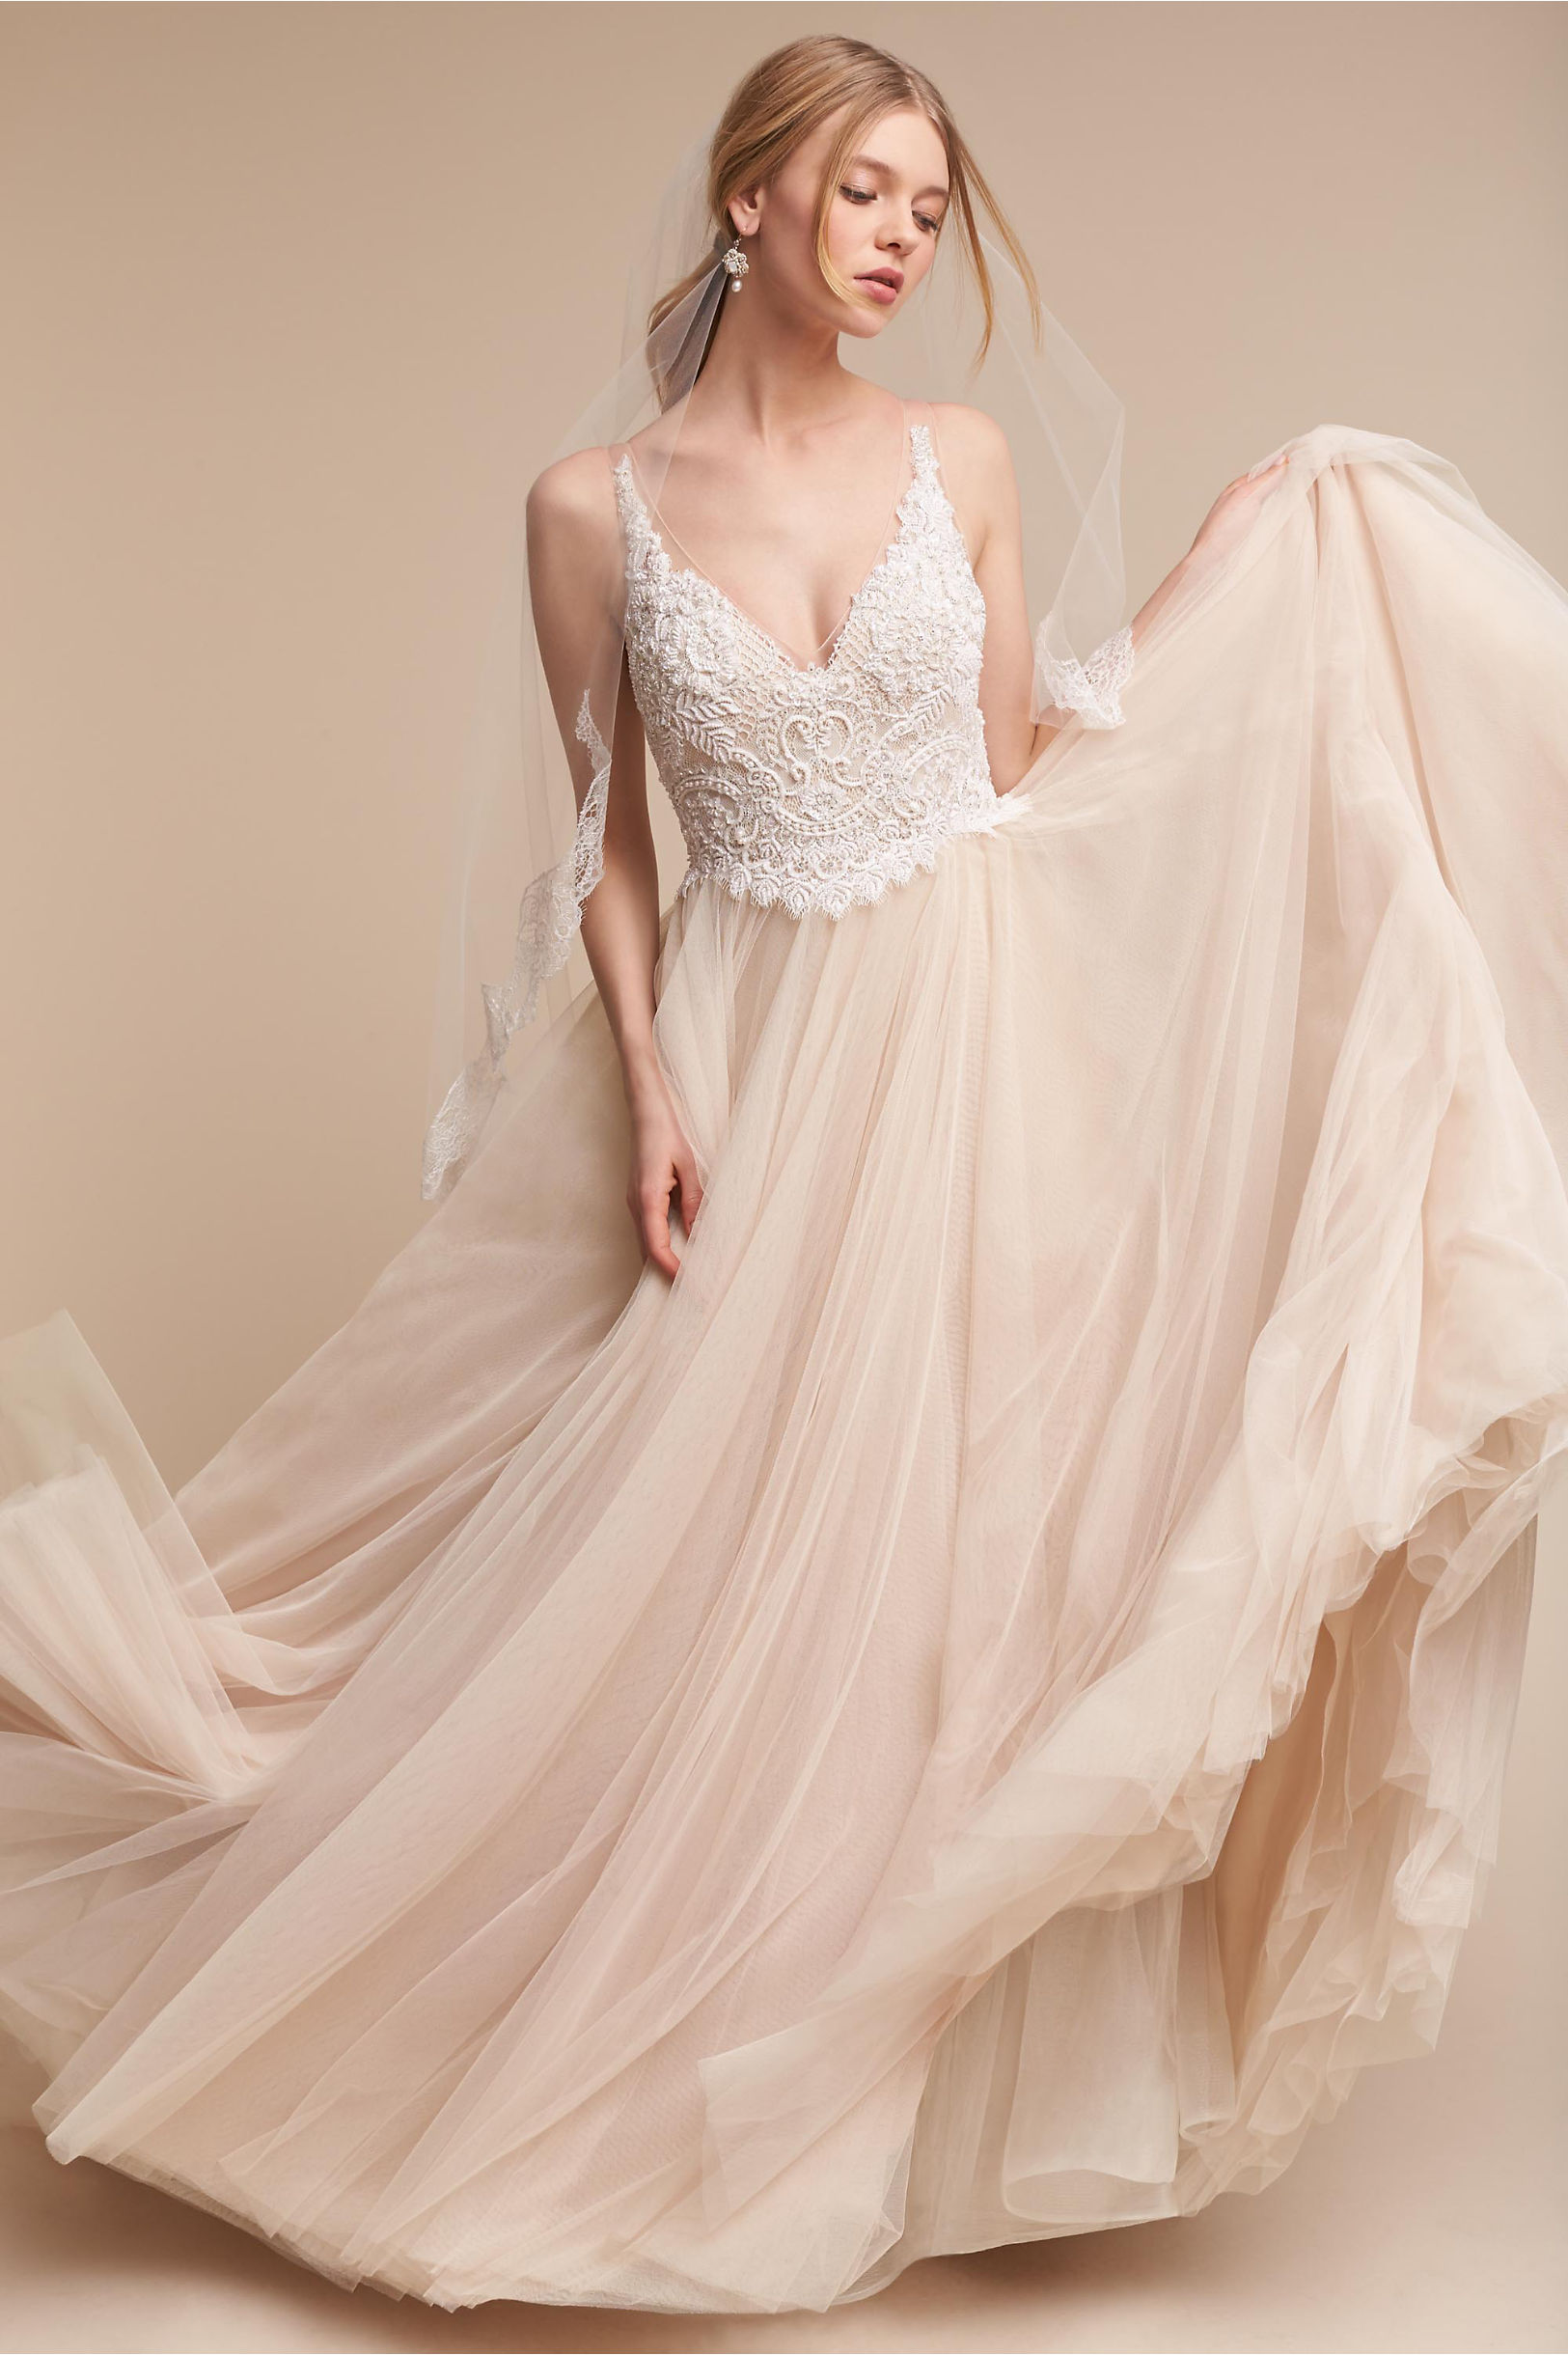 Wedding Dresses  Vintage &amp Simple Wedding Gowns  BHLDN